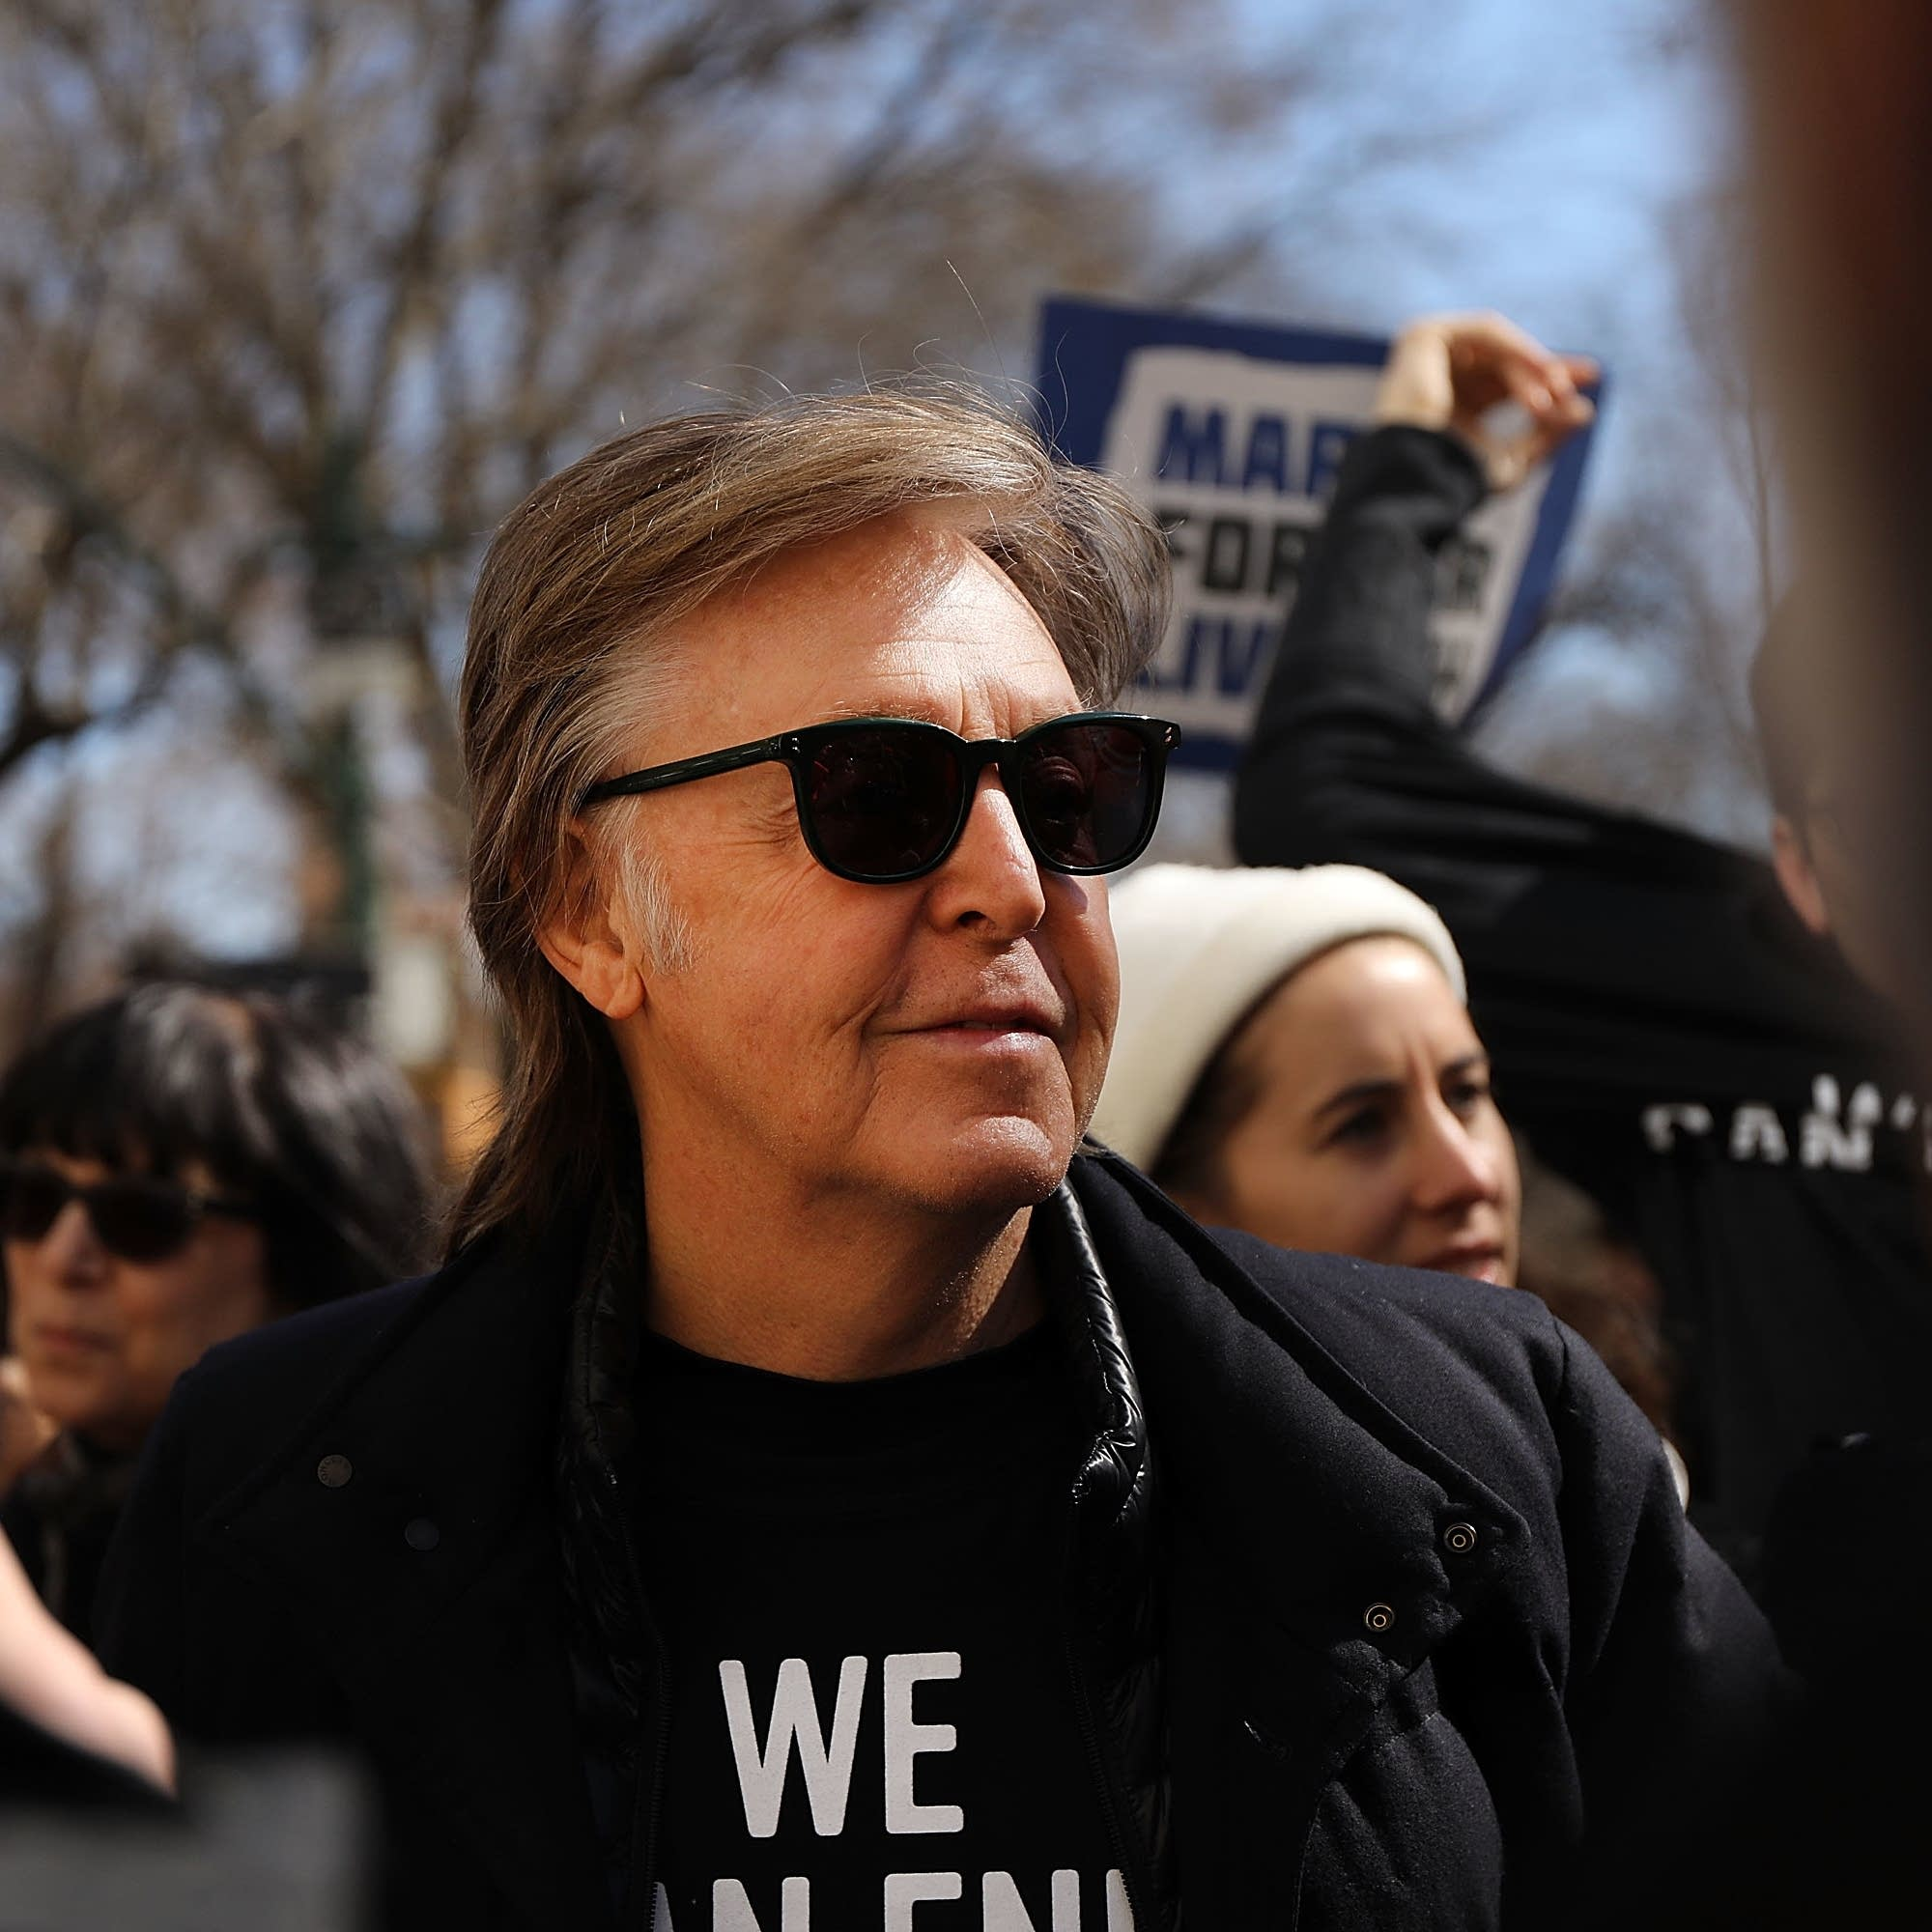 Paul McCartney at the March for Our Lives in New York City.